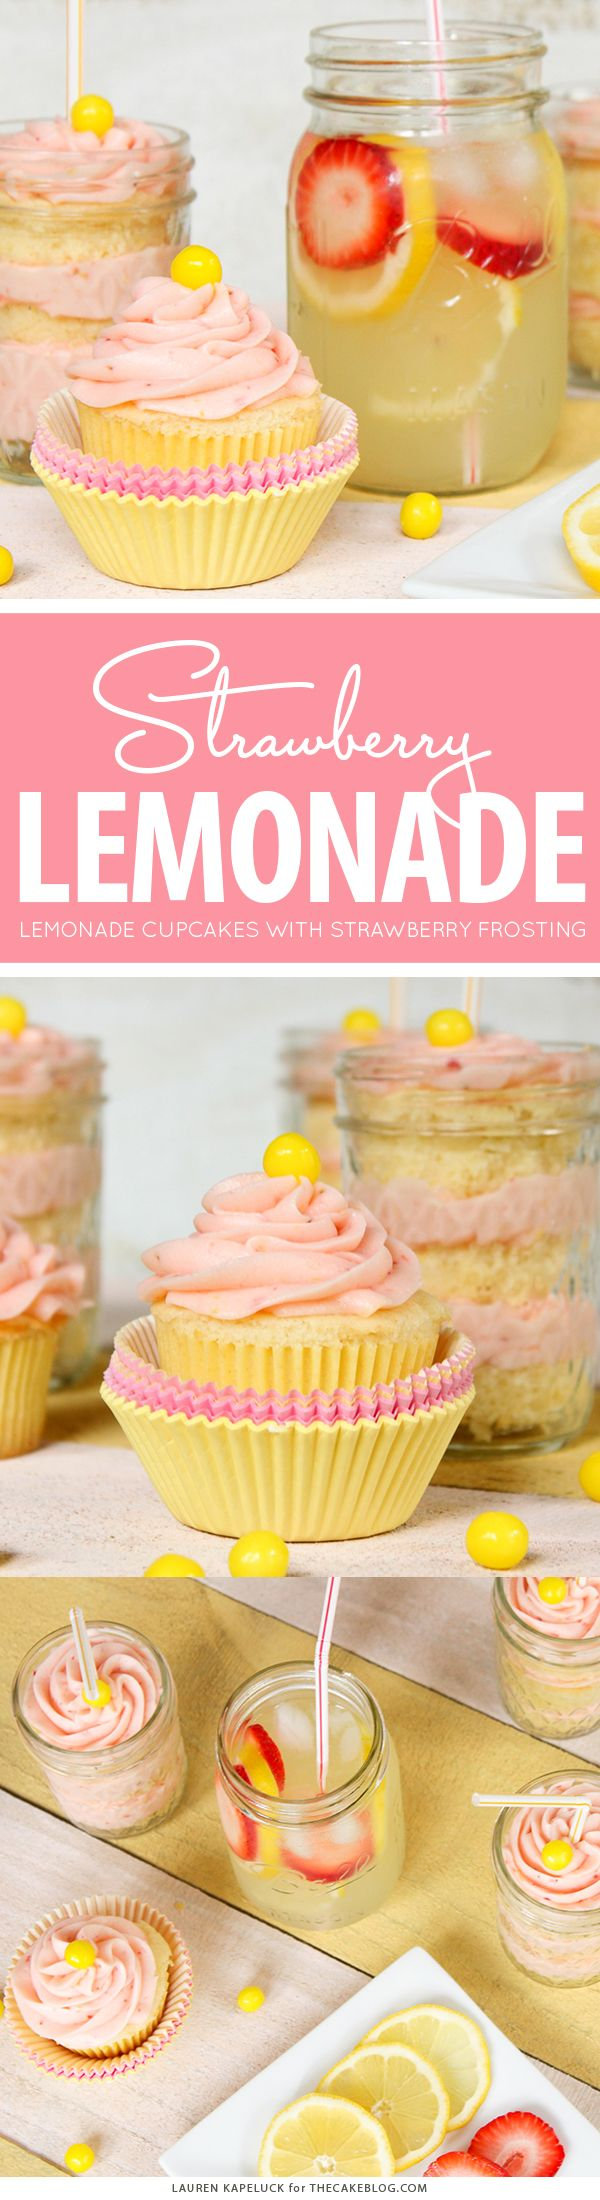 Strawberry Lemonade Cupcakes - moist lemon cupcakes paired with fresh strawberry buttercream for the perfect combination of sour and sweet | by Lauren Kapeluck for TheCakeBlog.com